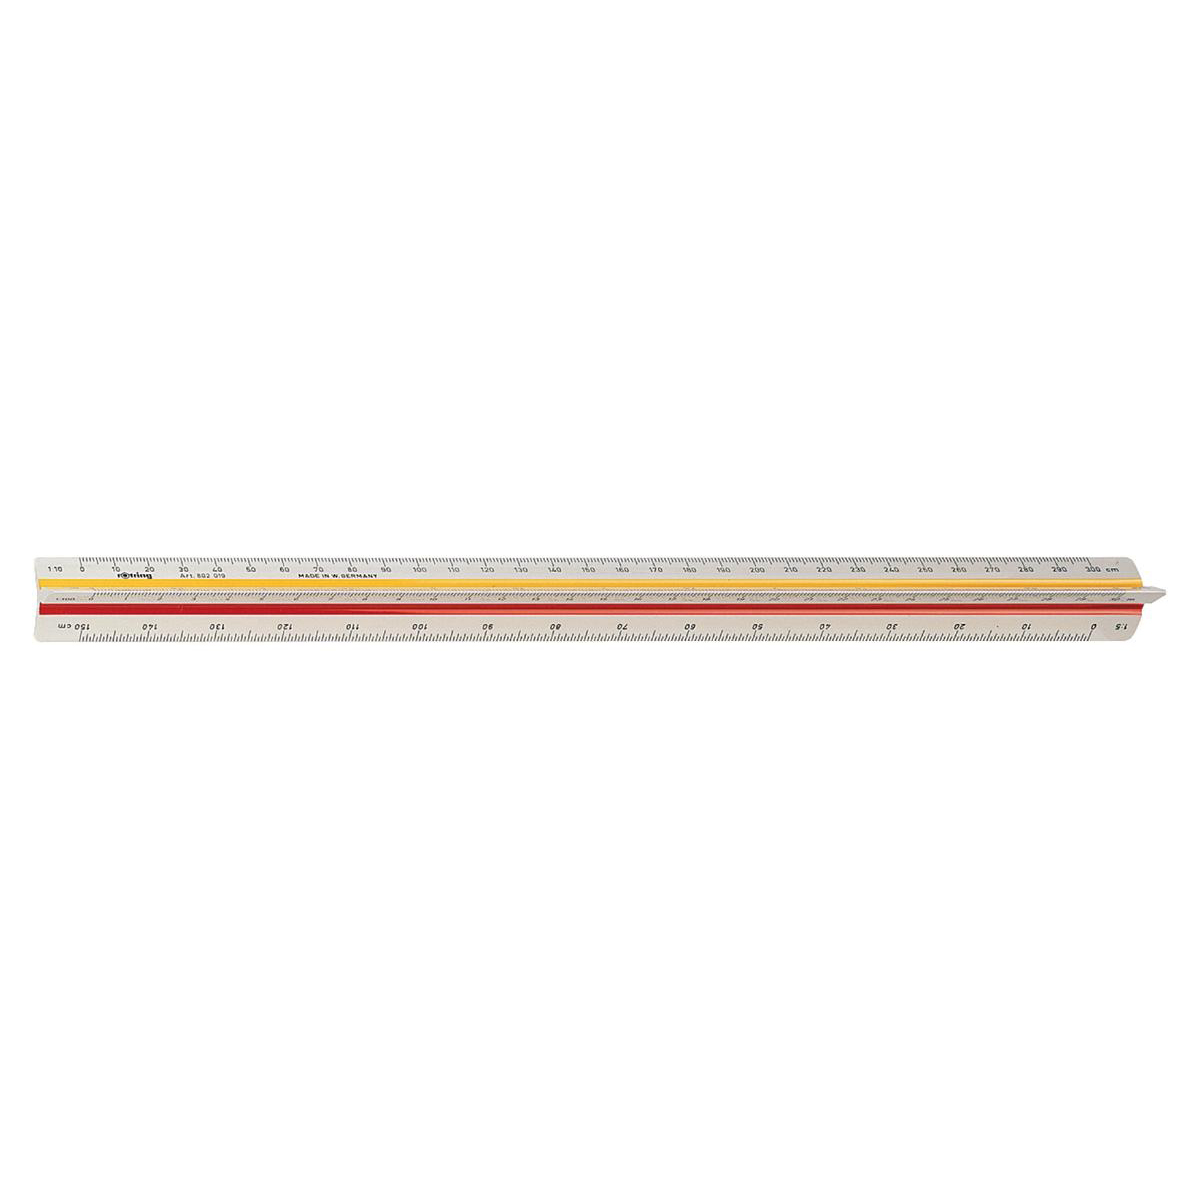 Geometry Equipment Rotring Ruler Triangular Reduction Scale 1 Architect 1:10 to 1:1250 with 2 Coloured Flutings Ref S0220481